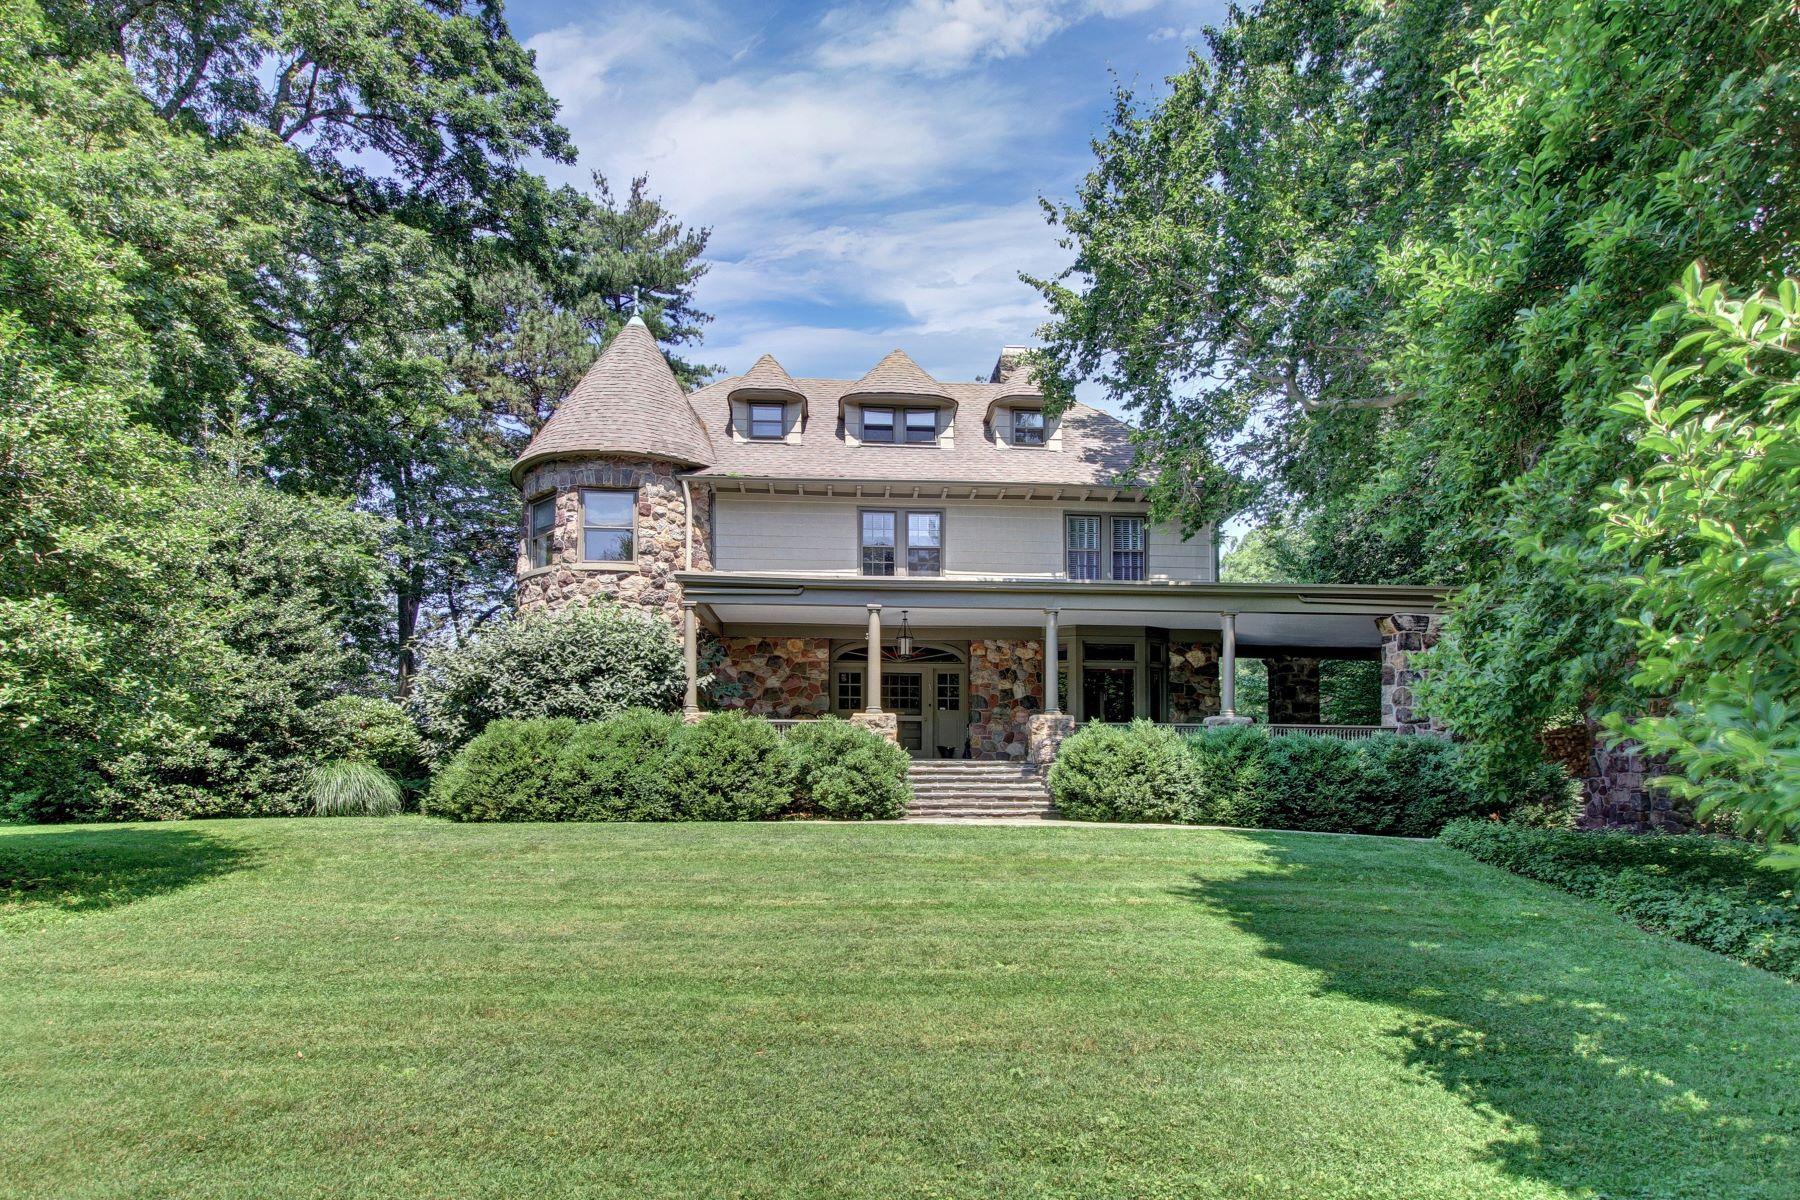 Single Family Home for Sale at Exquisite Northside estate on 1.9 park-like acres. 0.7 miles to town and NYC 15 Badeau Avenue, Summit, New Jersey 07901 United States